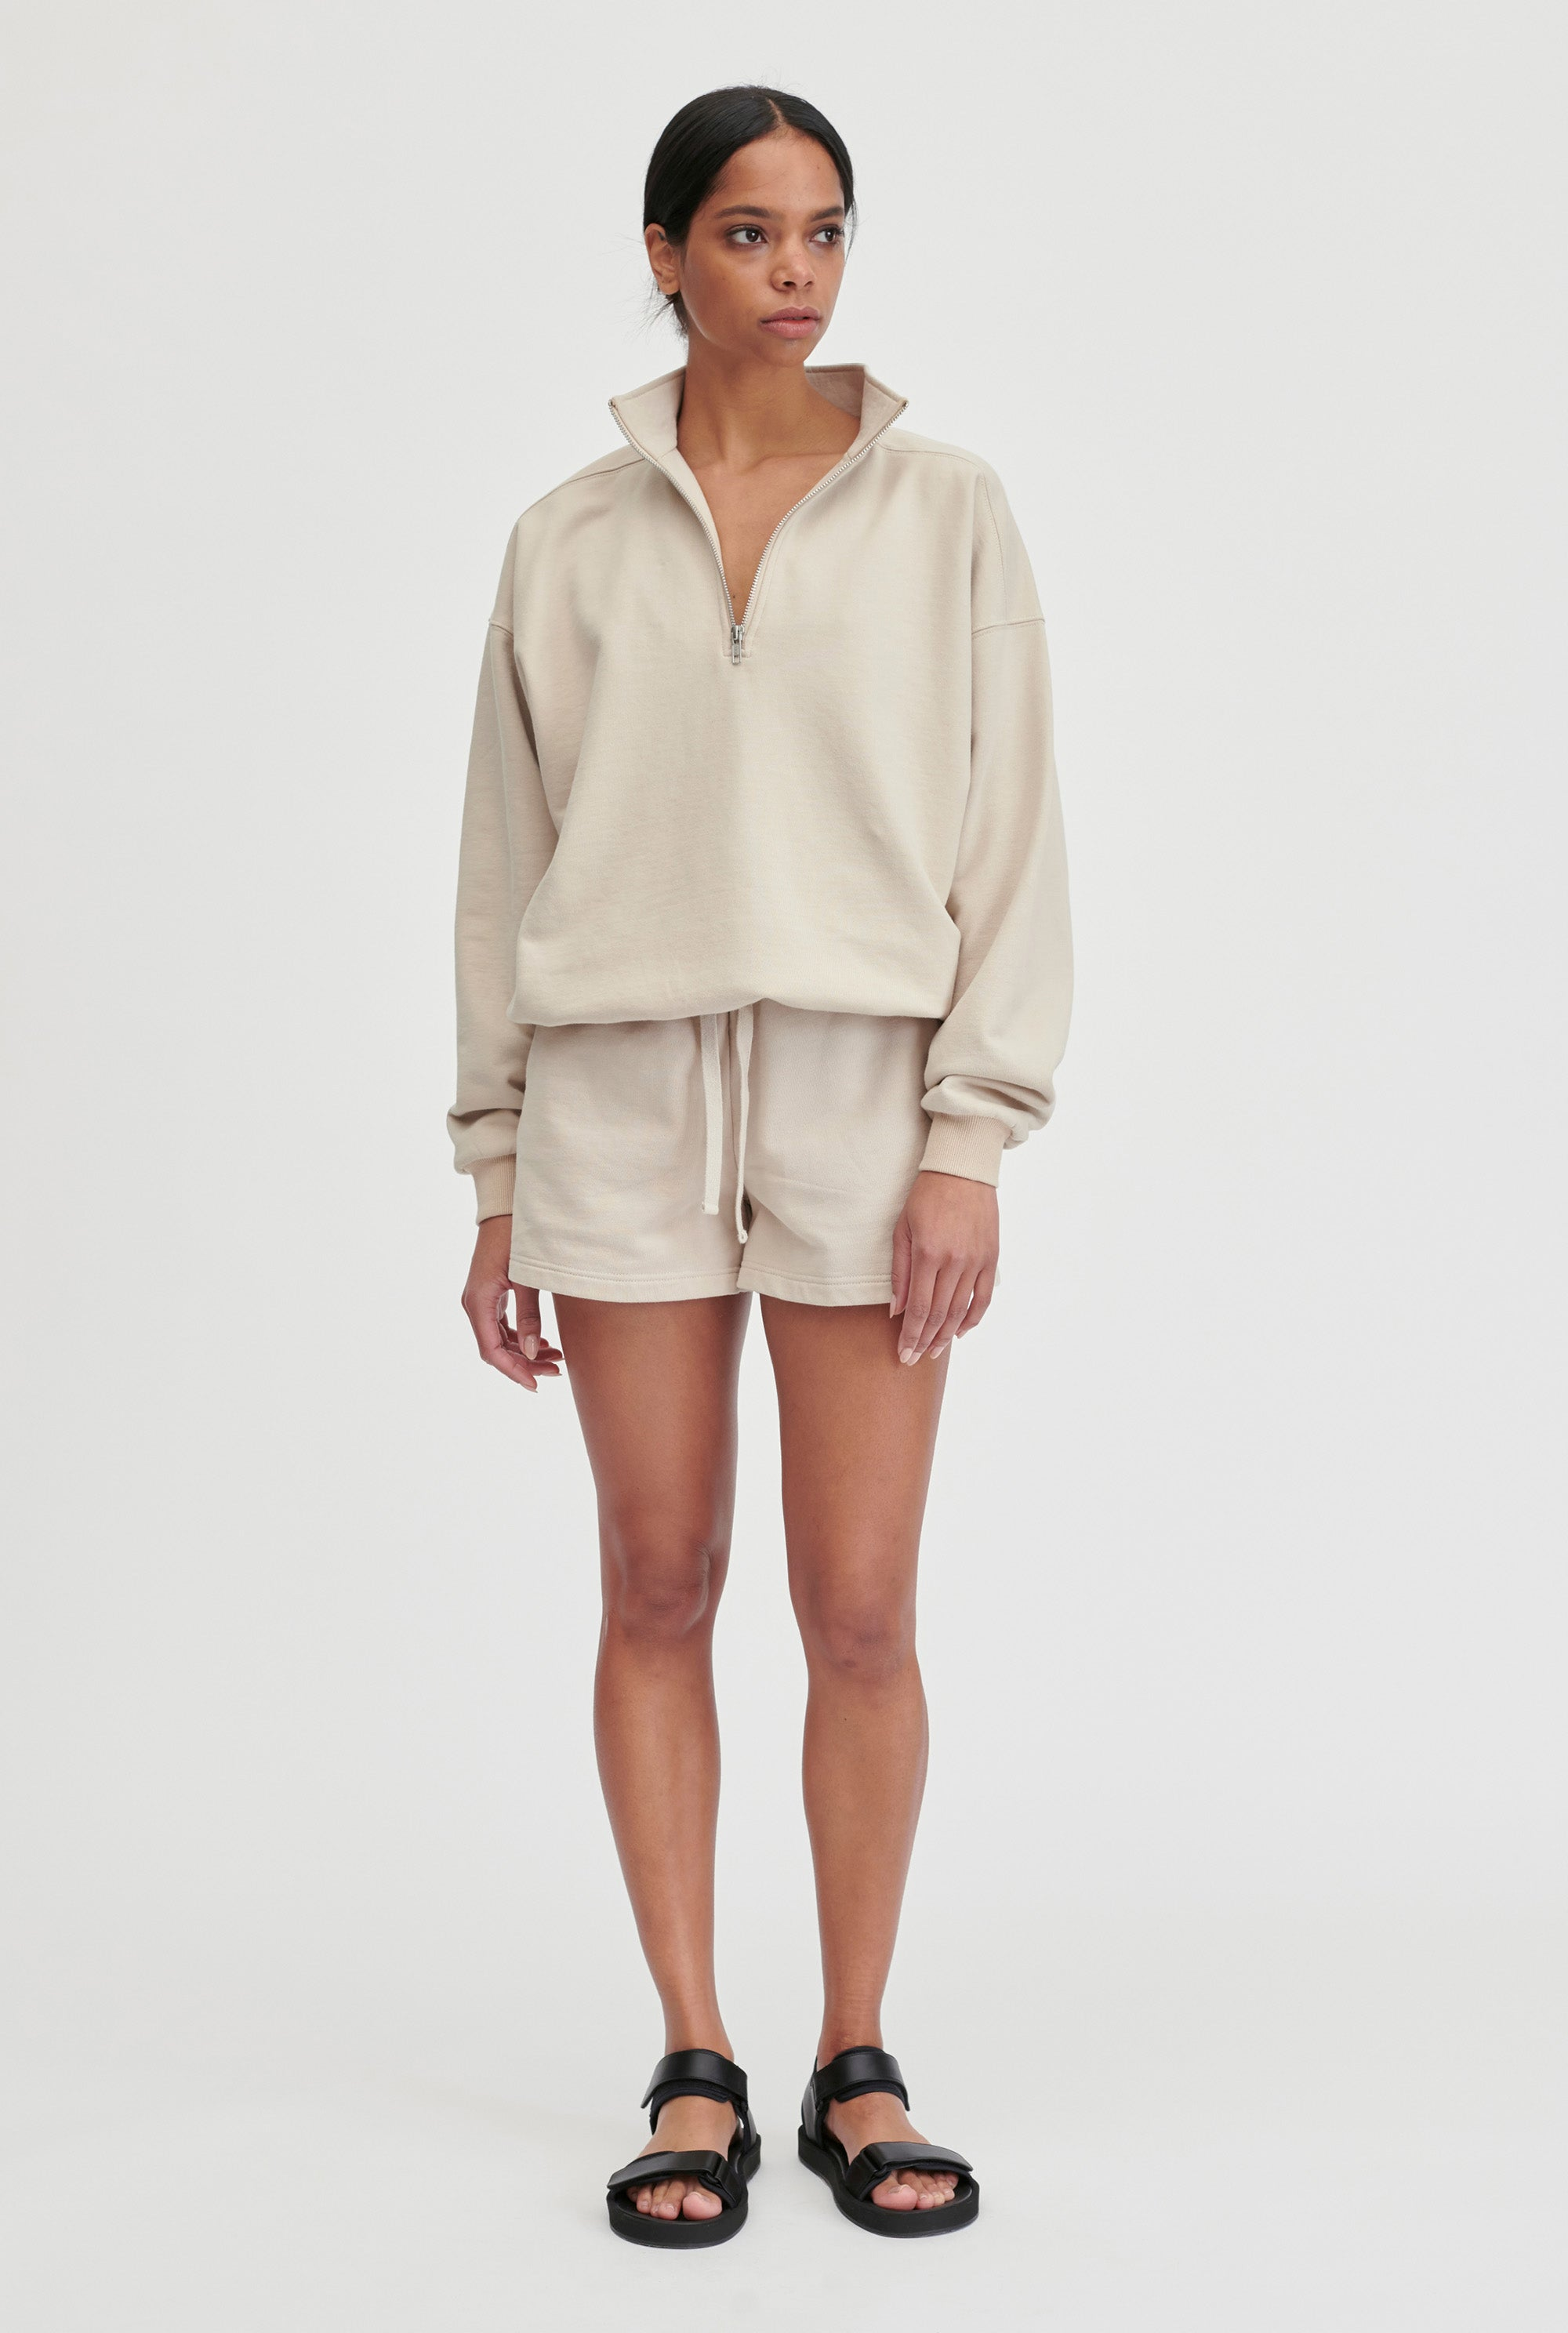 Unisex Track Zip Sweater - Oat